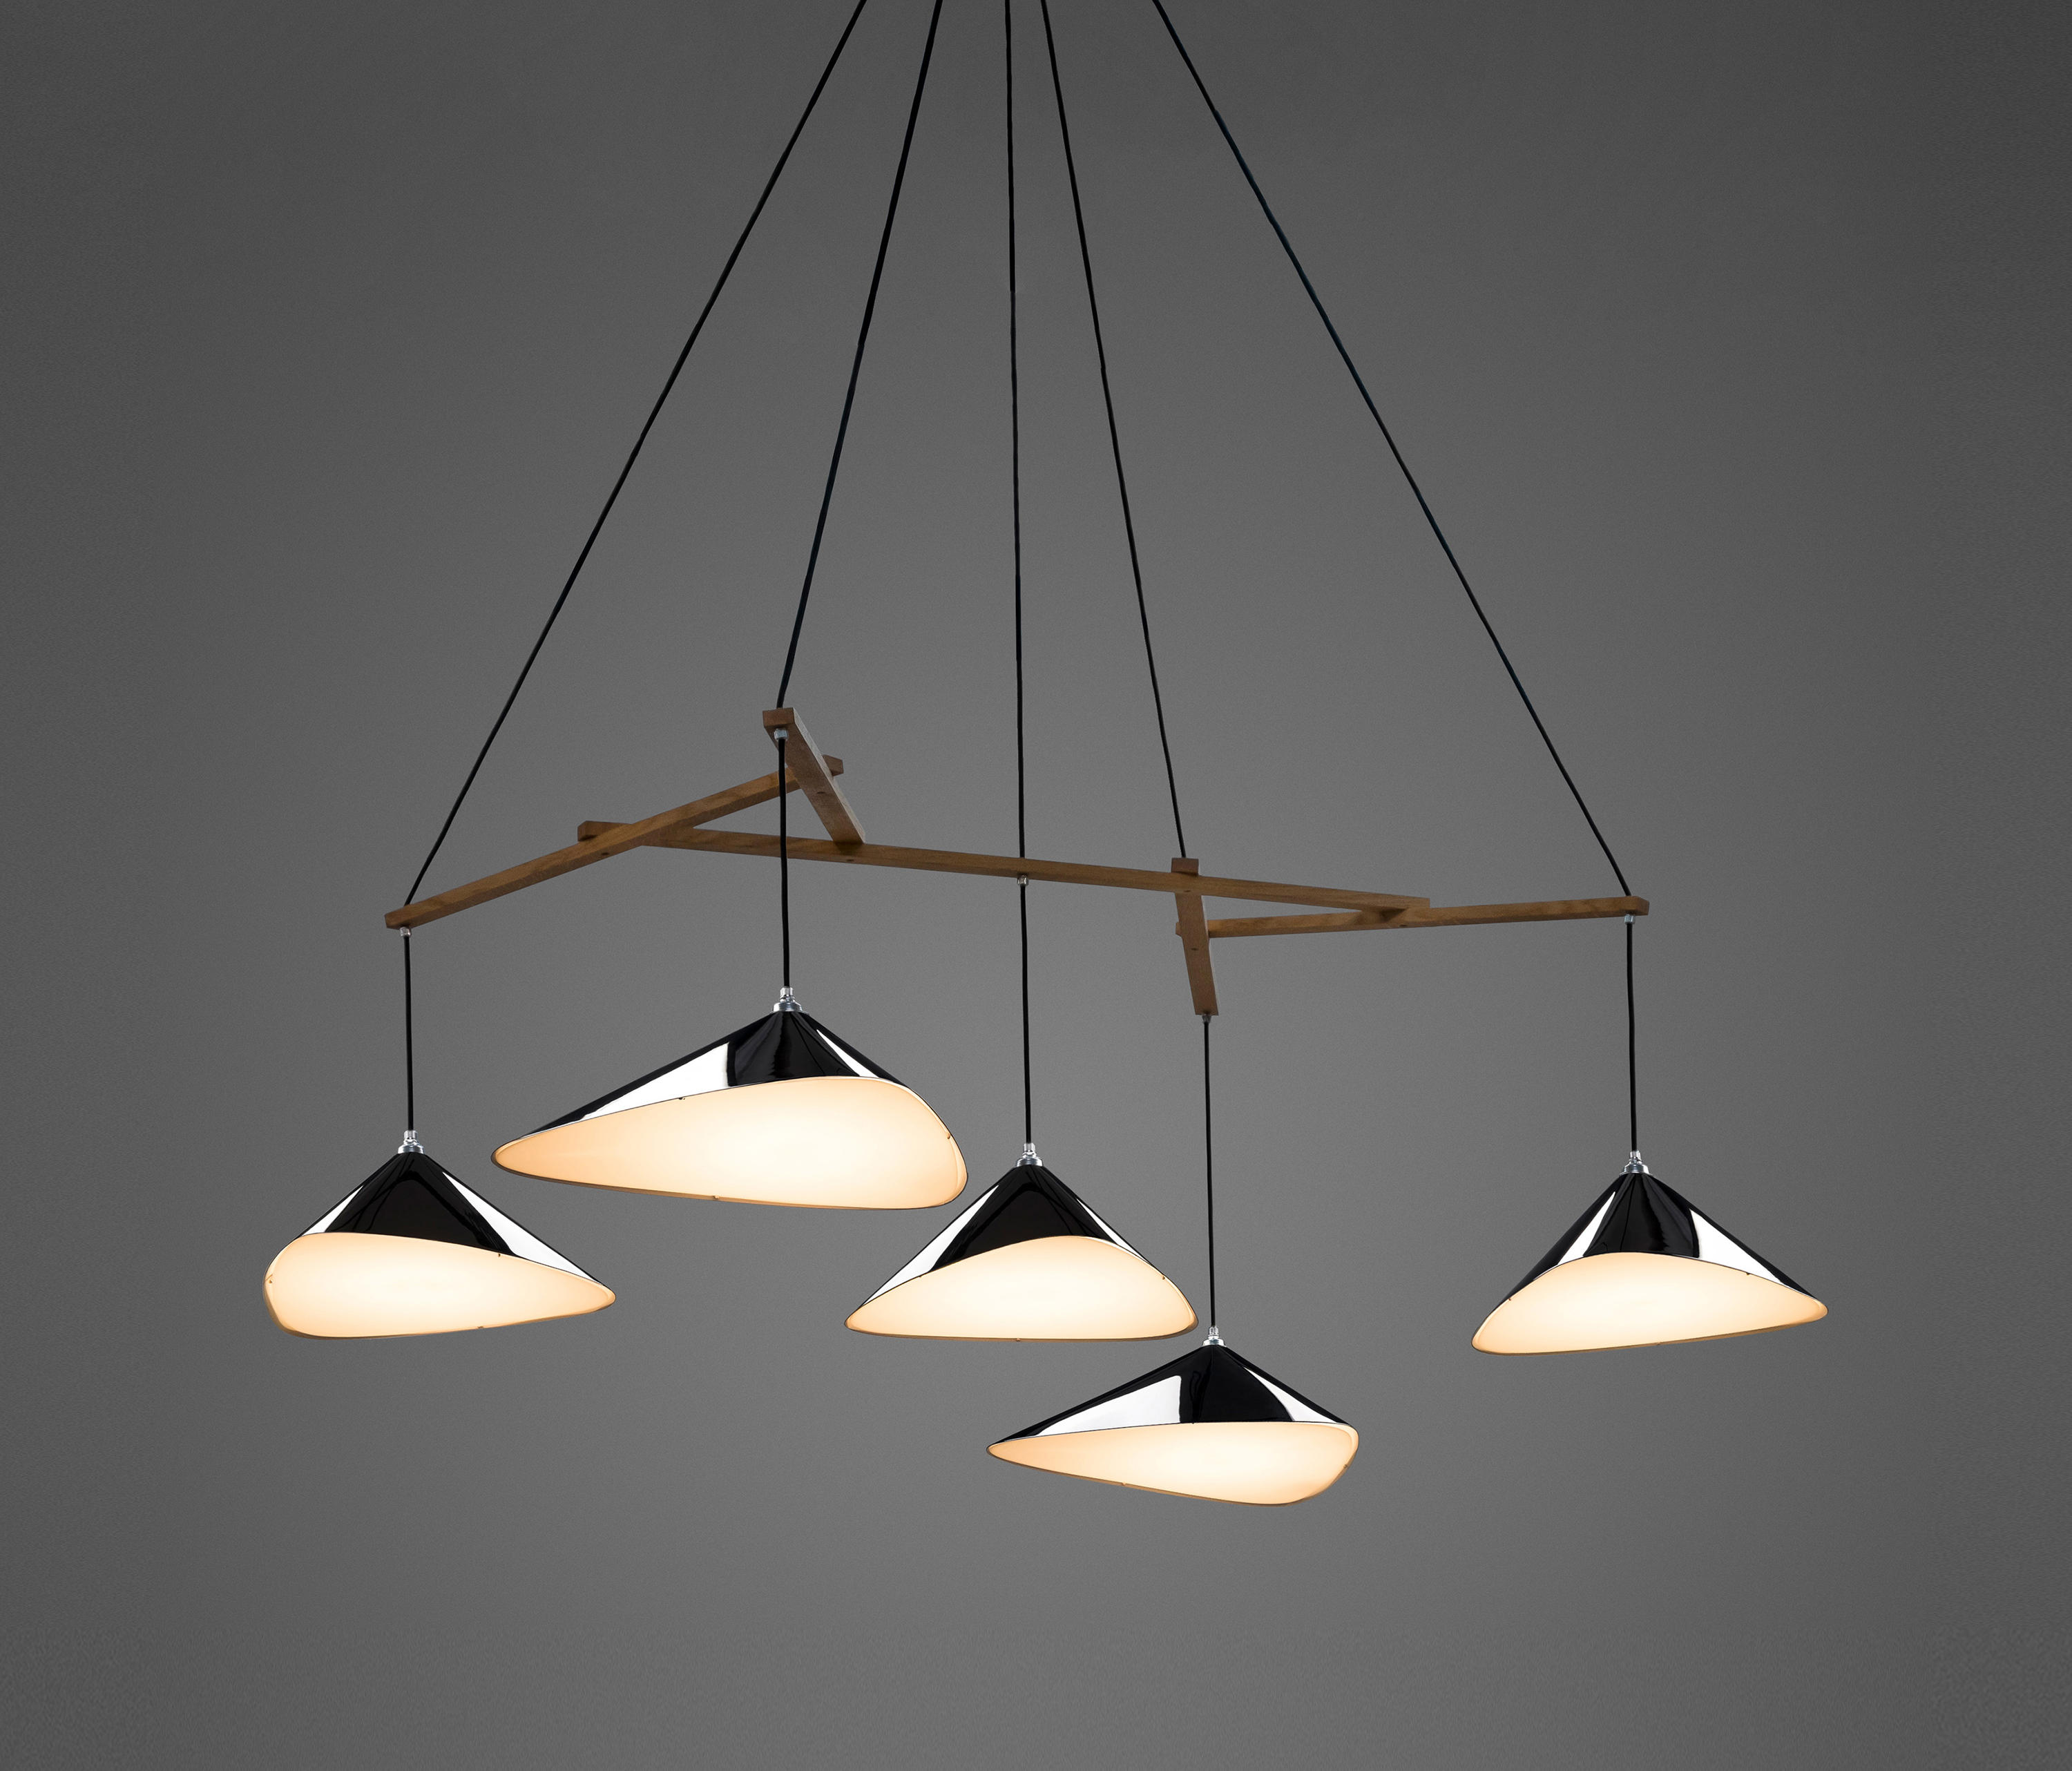 Suspension Design Neon Emily Group Of Five High Gloss General Lighting From